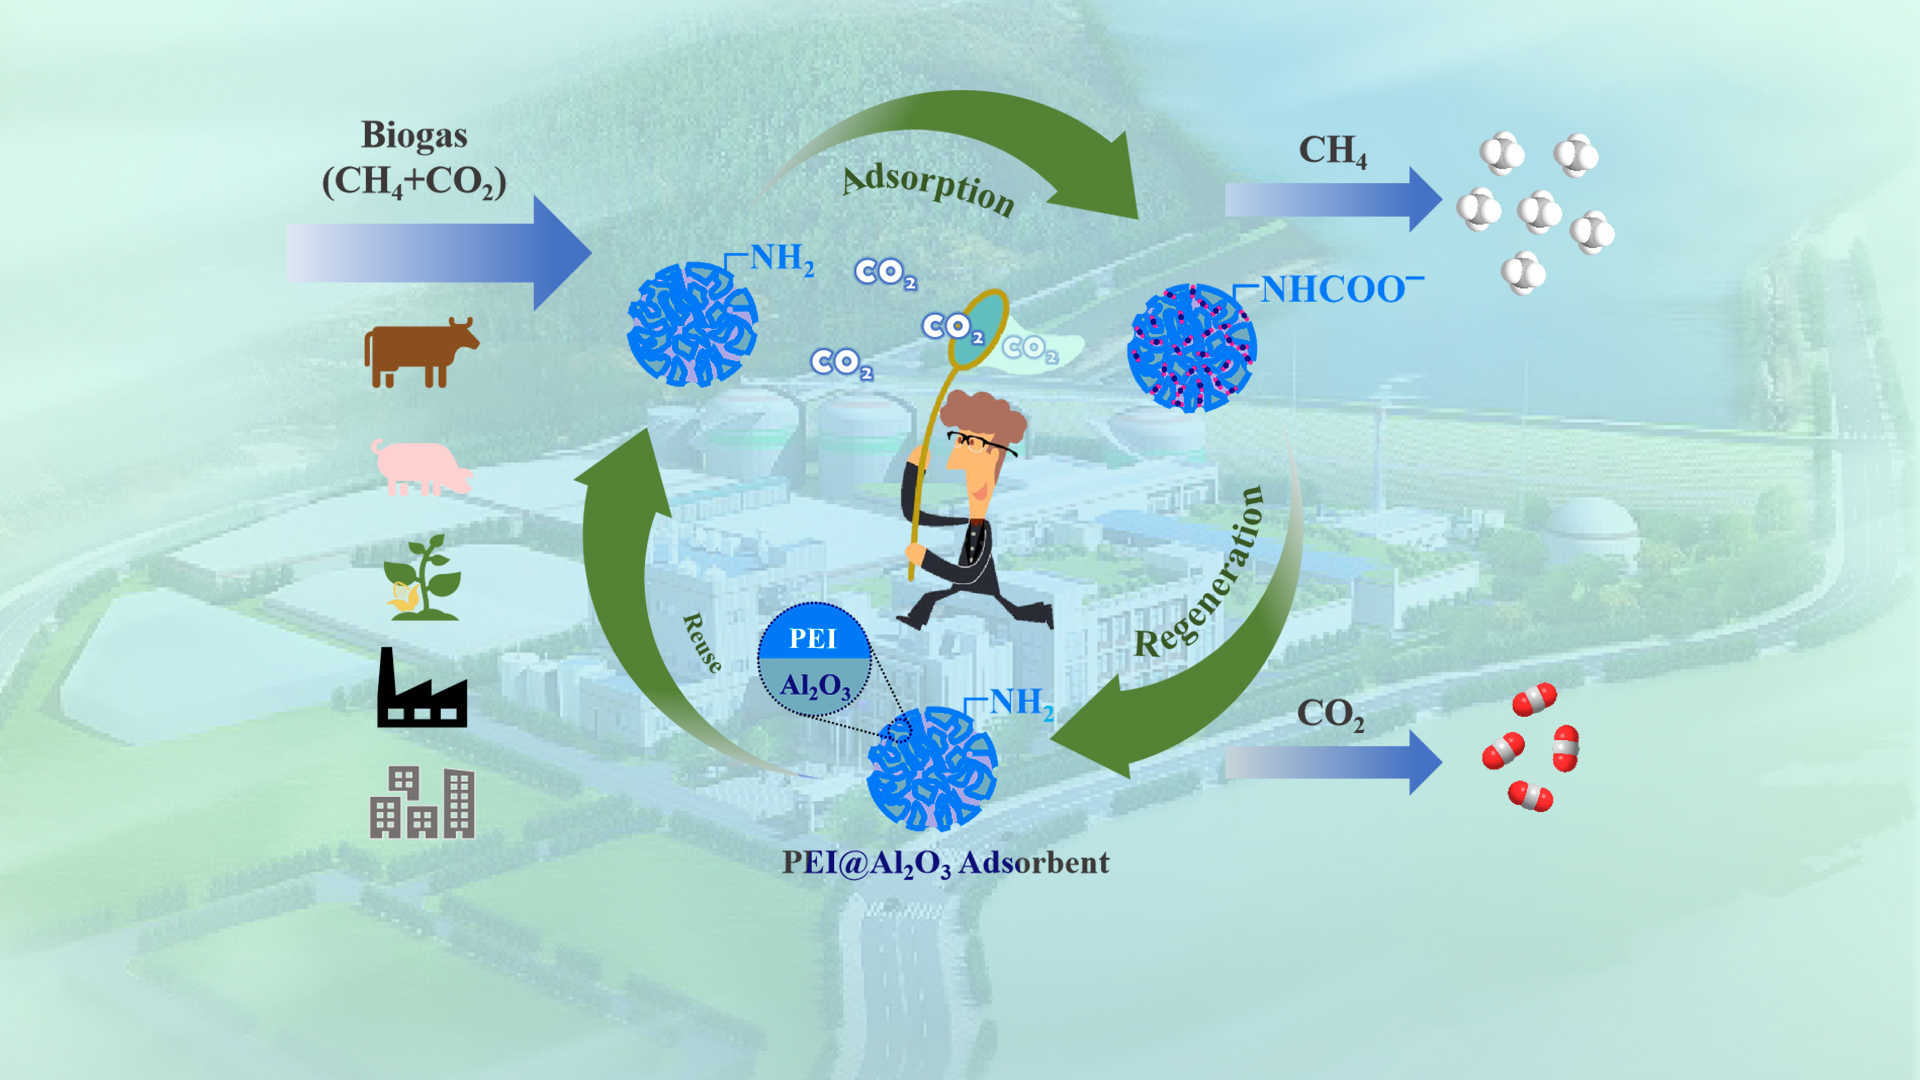 SUSTech Zuotai Zhang's team makes advanced progress in solid amine CO2 capture materials